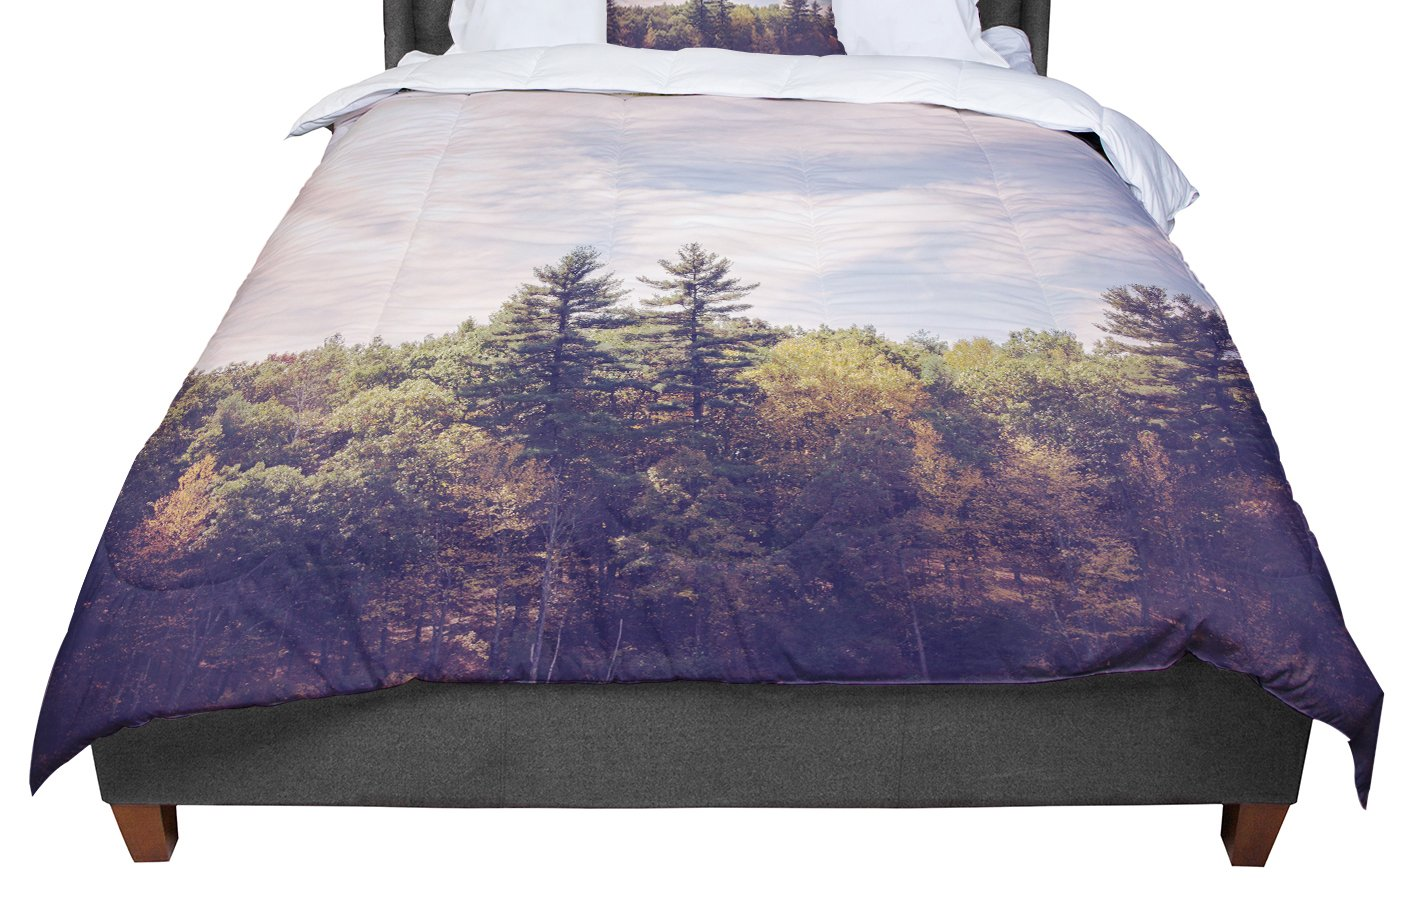 KESS InHouse Jillian Audrey 'Walden Woods' Green White King / Cal King Comforter, 104' X 88'